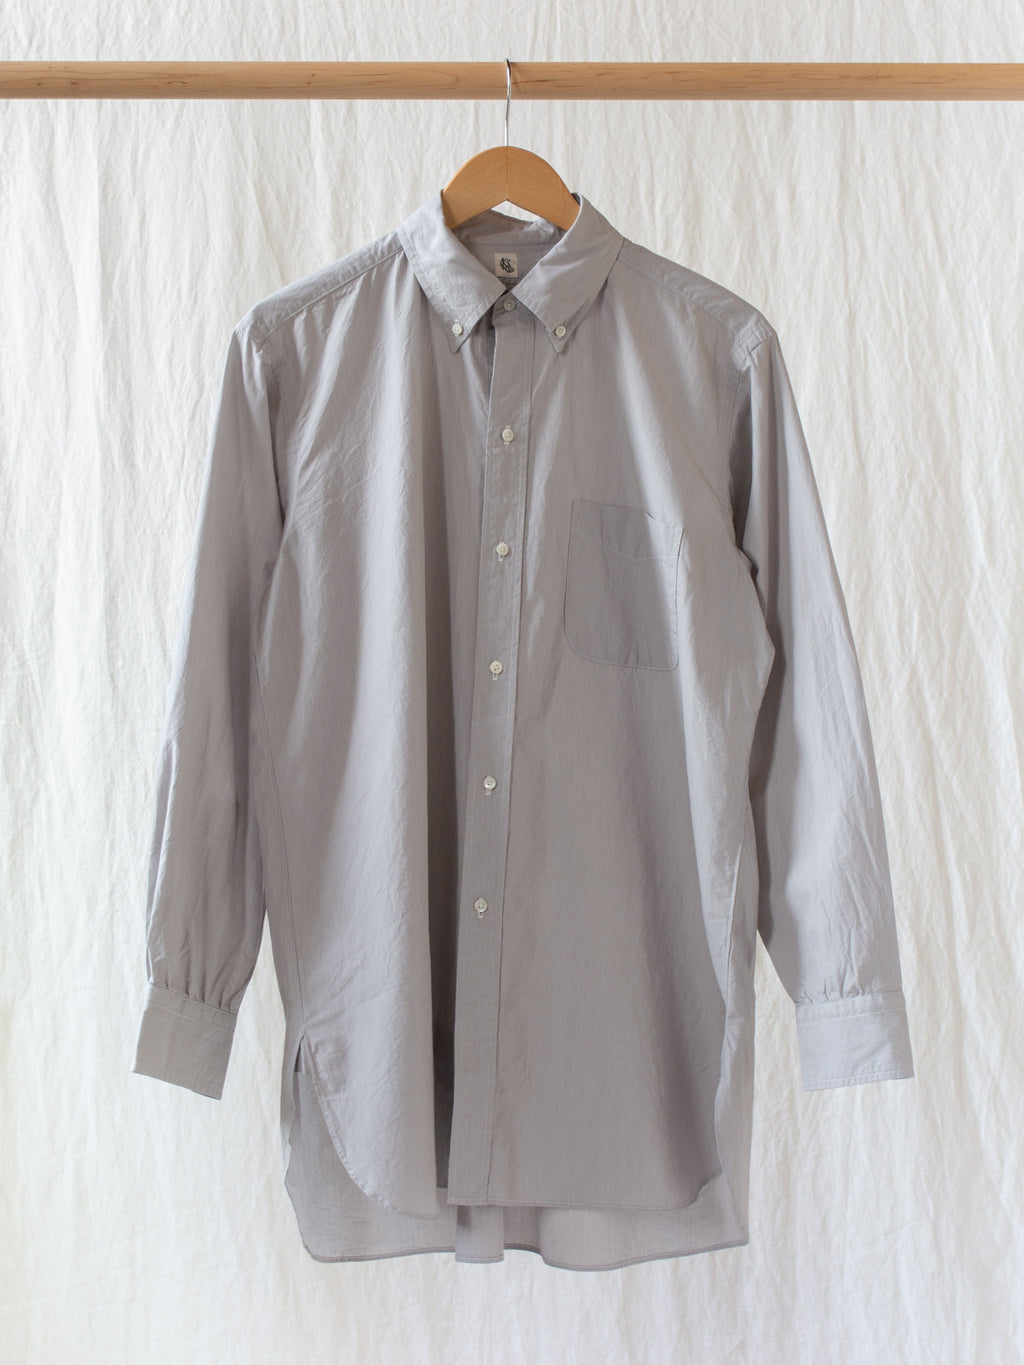 Namu Shop - Kaptain Sunshine Relax Button-down Shirt - Gray Pinstripe